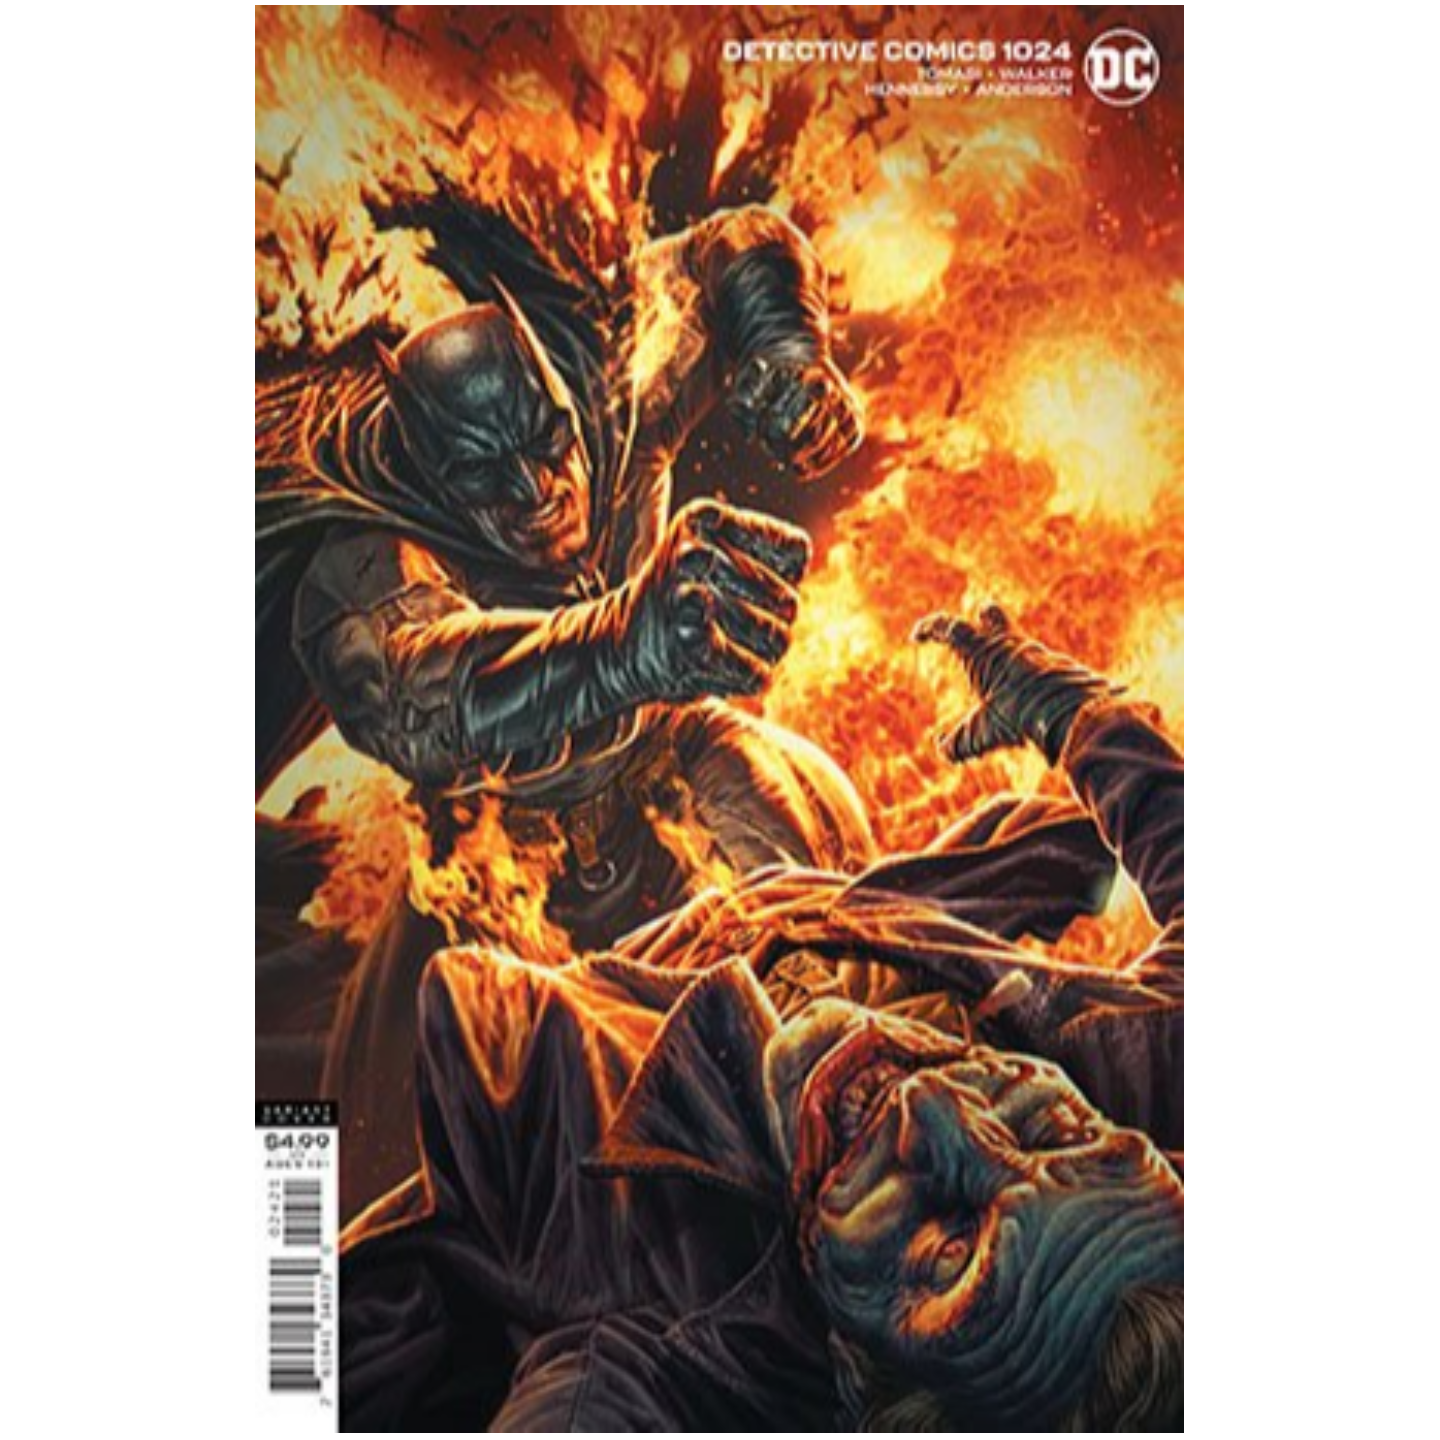 DETECTIVE COMICS #1024 CVR B LEE BERMEJO CARD STOCK VAR (JOKER WAR)